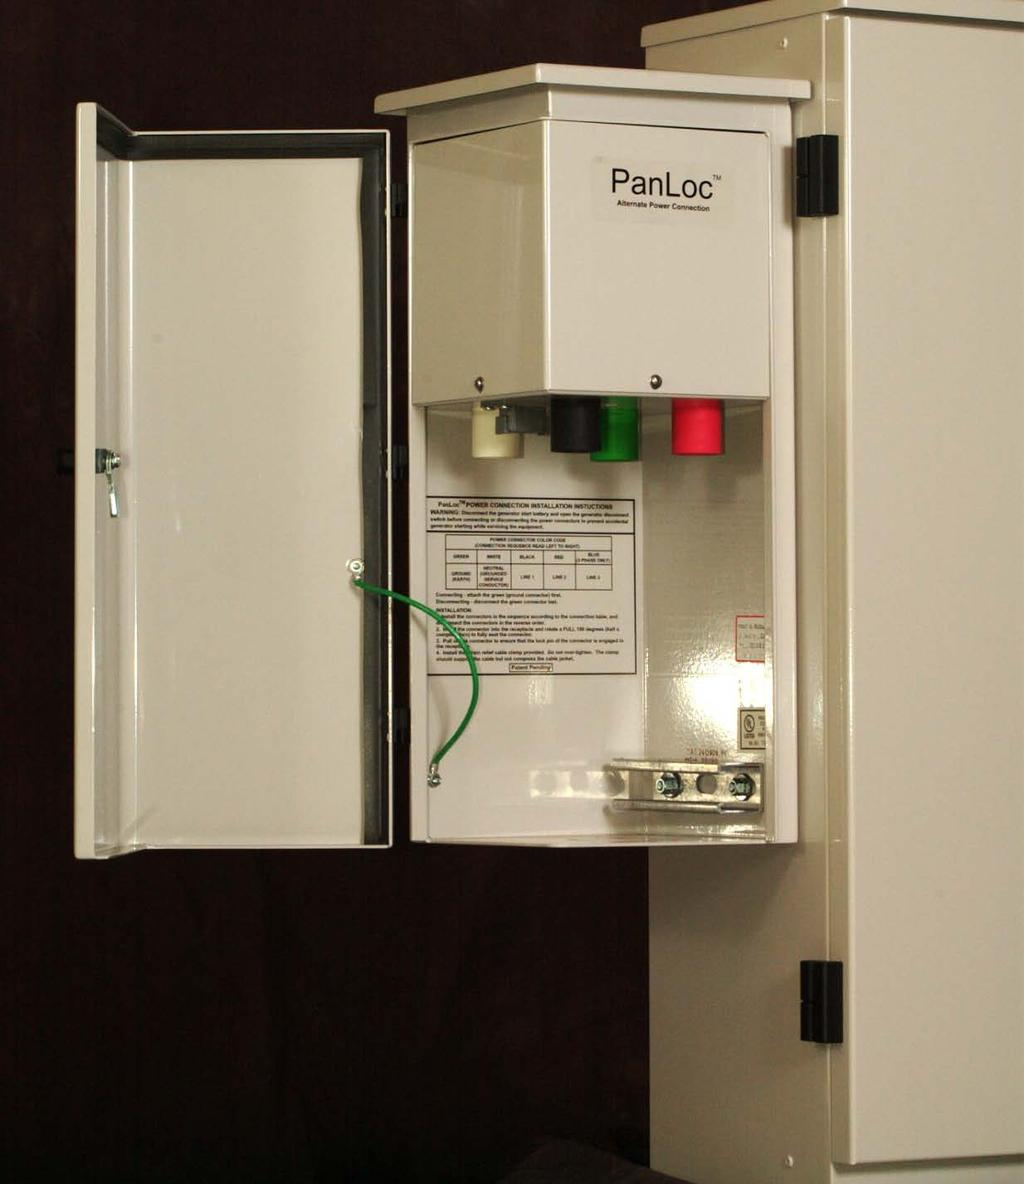 PanLoc alternate power connection PanLoc was developed to eliminate compatibility issues between alternate Power Source and Load Distribution.